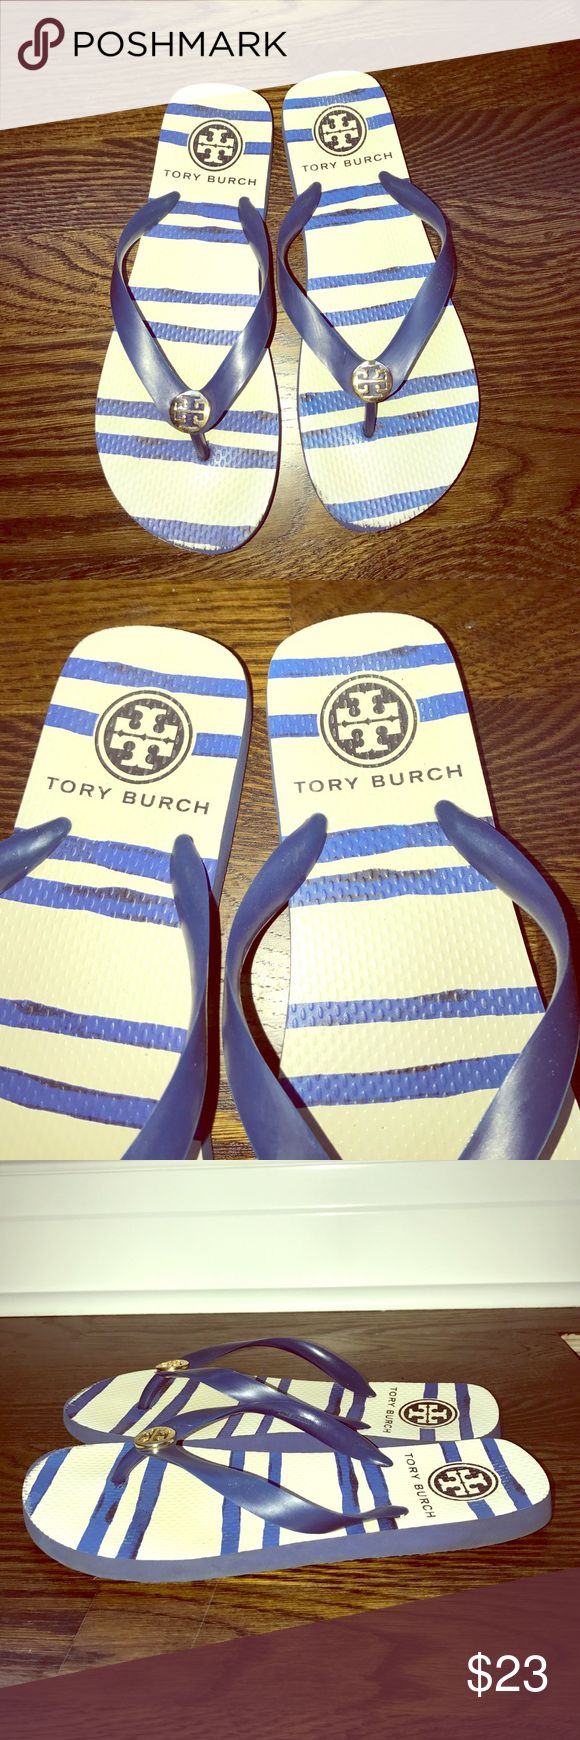 Tory Burch Classic Flip Flops Used, still in good condition (barley noticeable usage) Blue and White striped. Smoke free and pet free home. Tory Burch Shoes Sandals